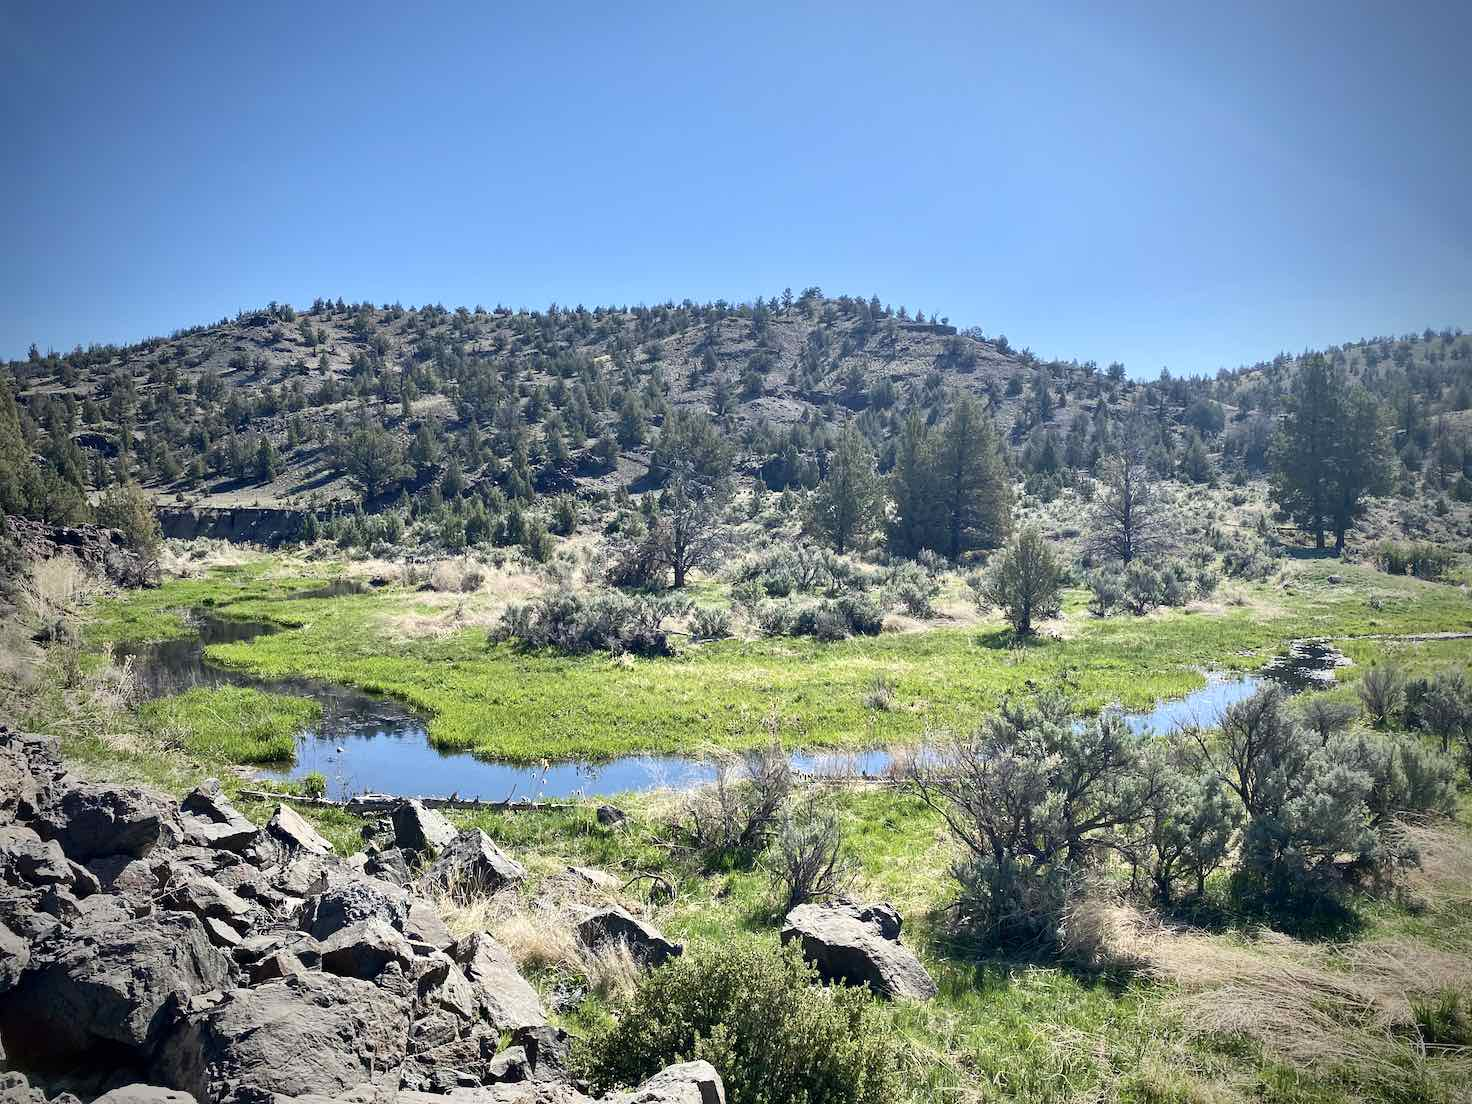 Bear Creek as seen from the Crooked River Highway.